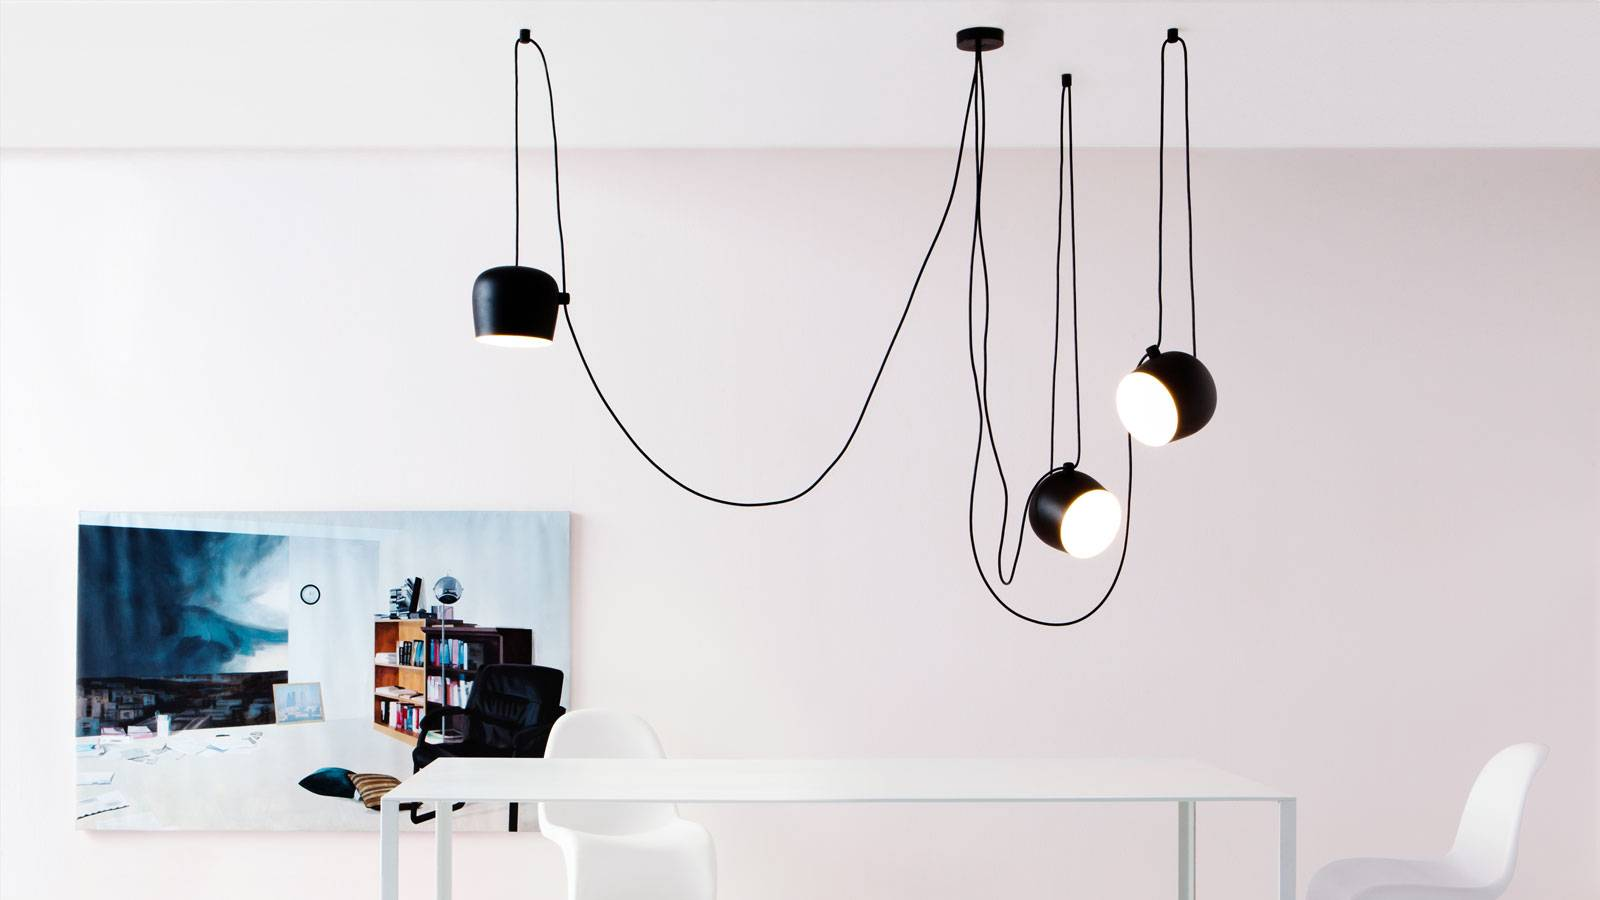 suspension lamp by R. & E. Bouroullec for Flos